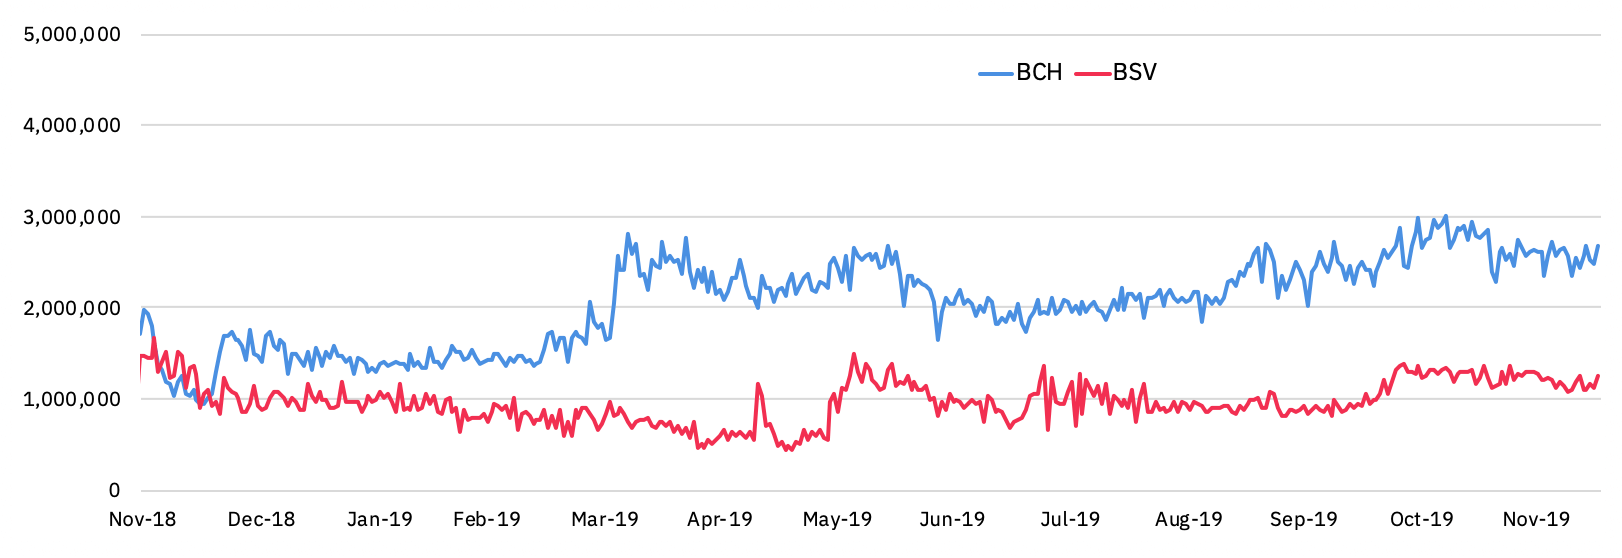 hashrates of BCH and BSV